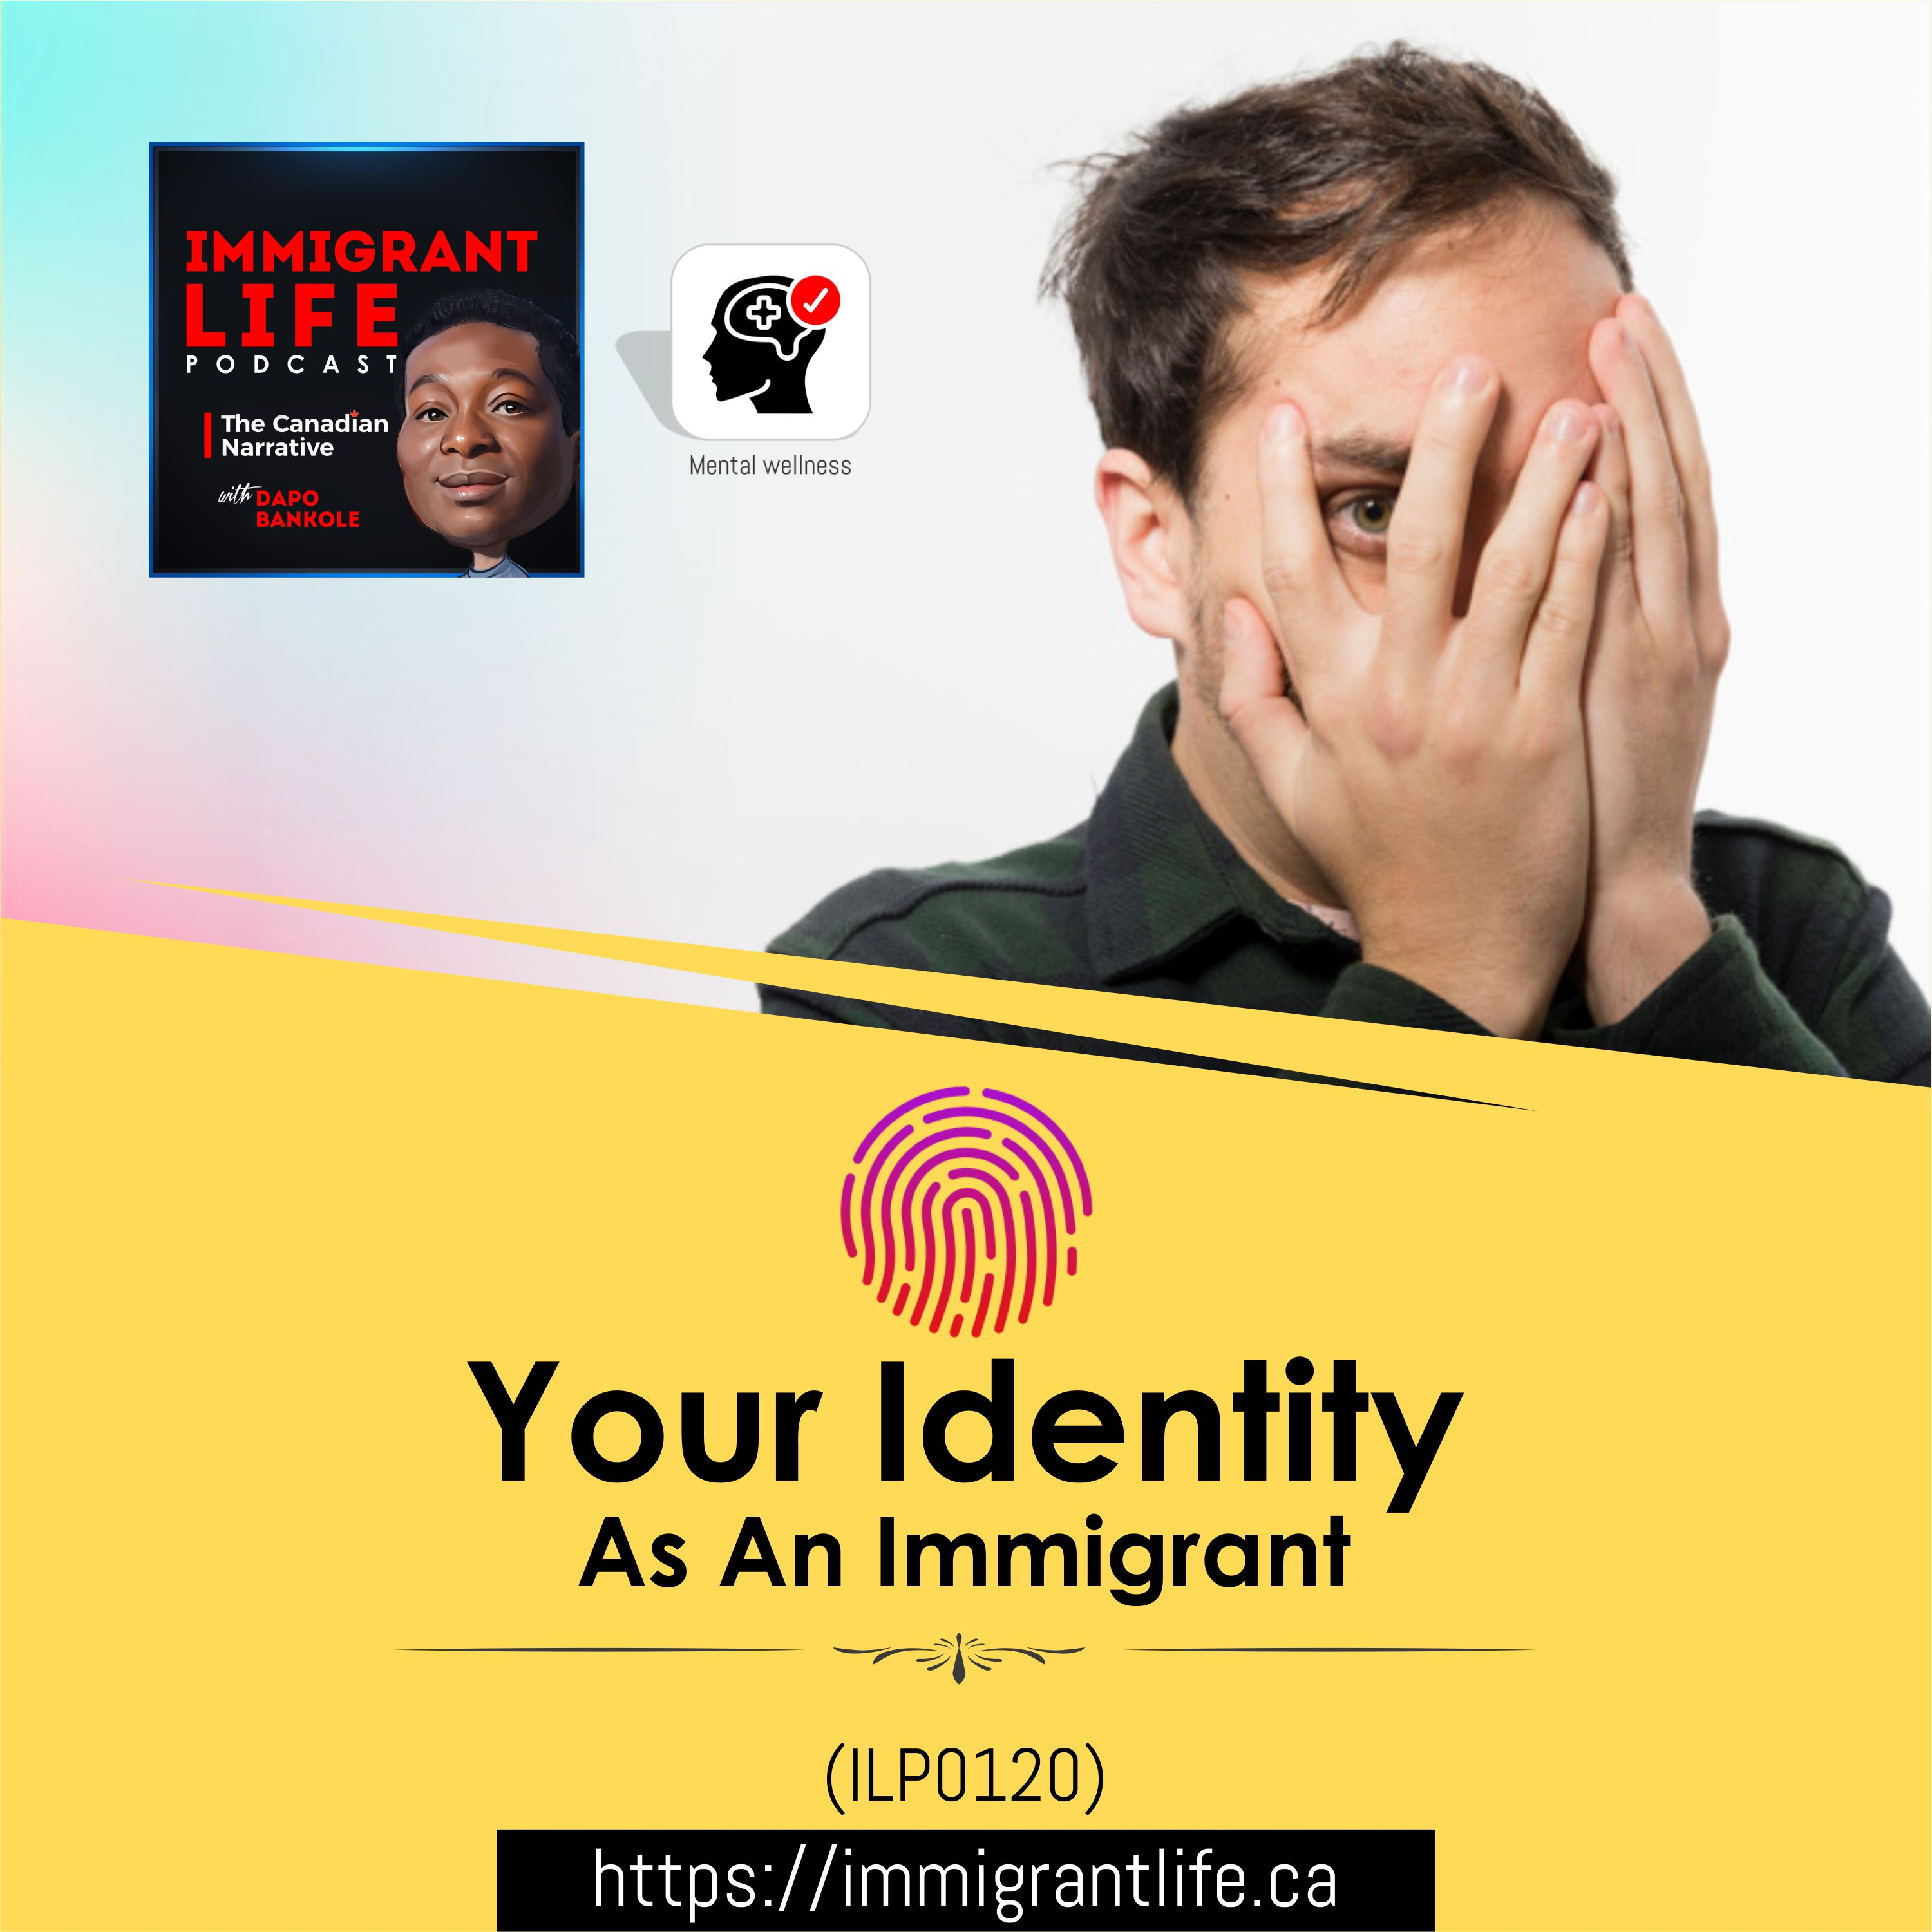 ILP-0120: Your Identity As An Immigrant